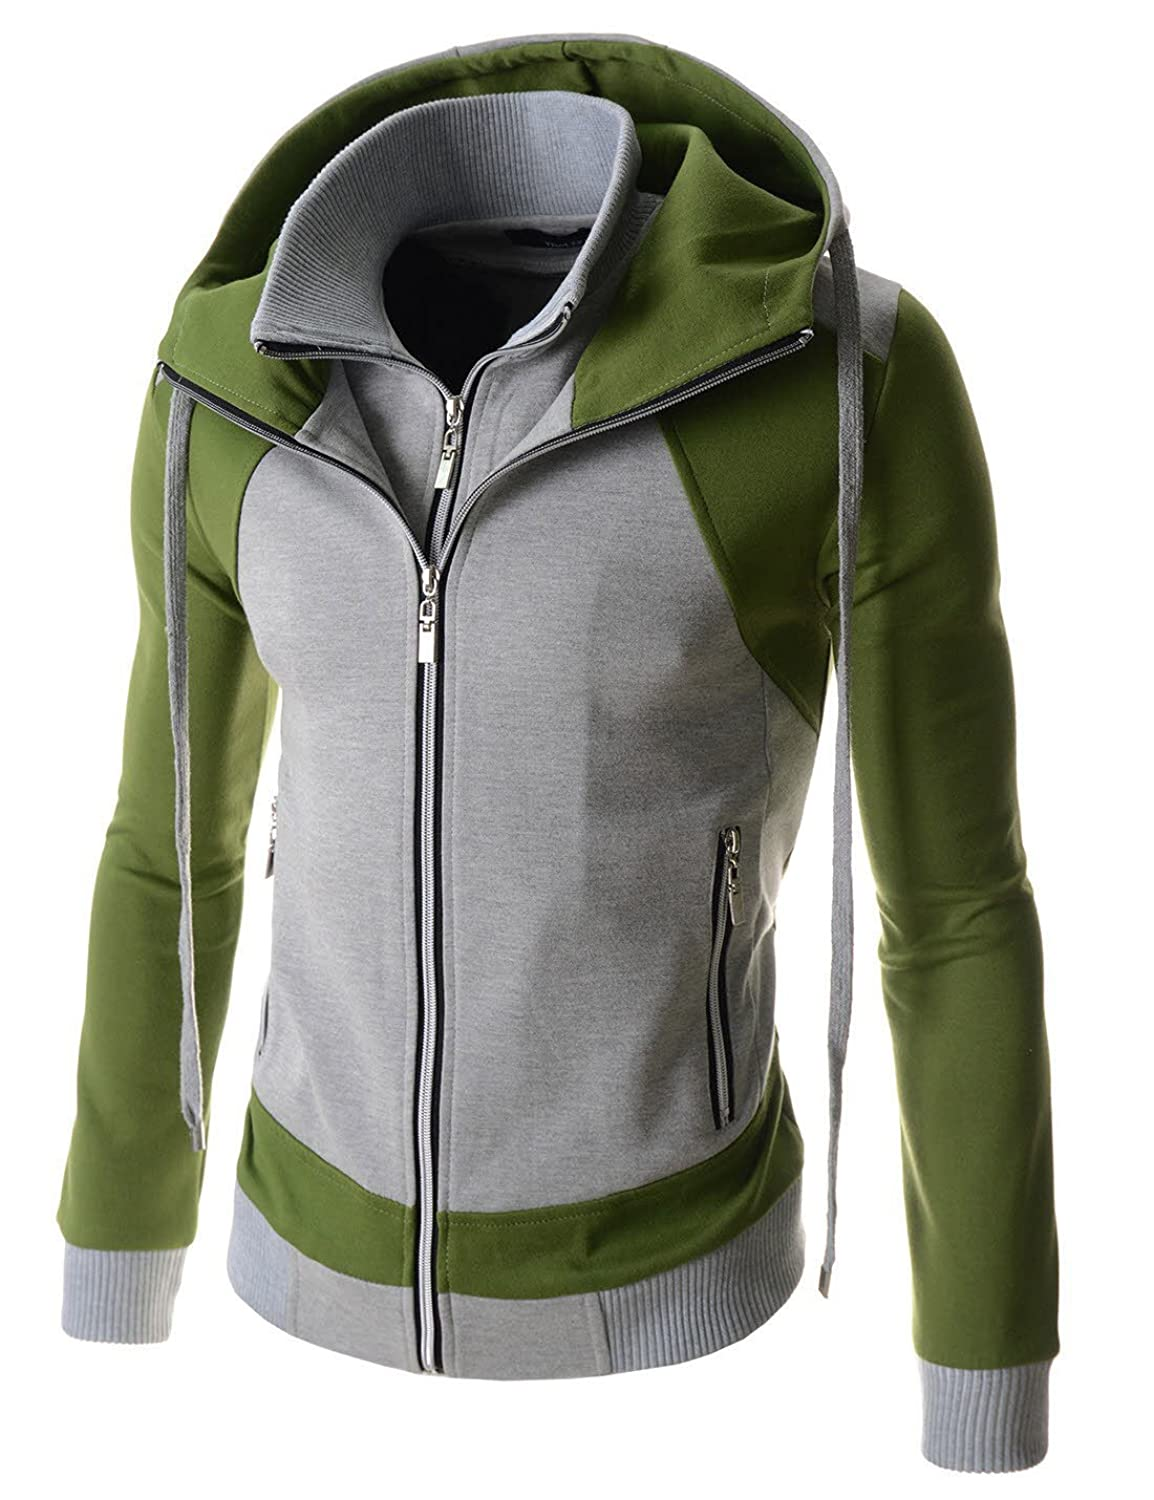 Mens jacket casual - Lcjb Thelees Mens Casual 2 Tone Plain Solid Double Zipper Hood Cotton Jacket